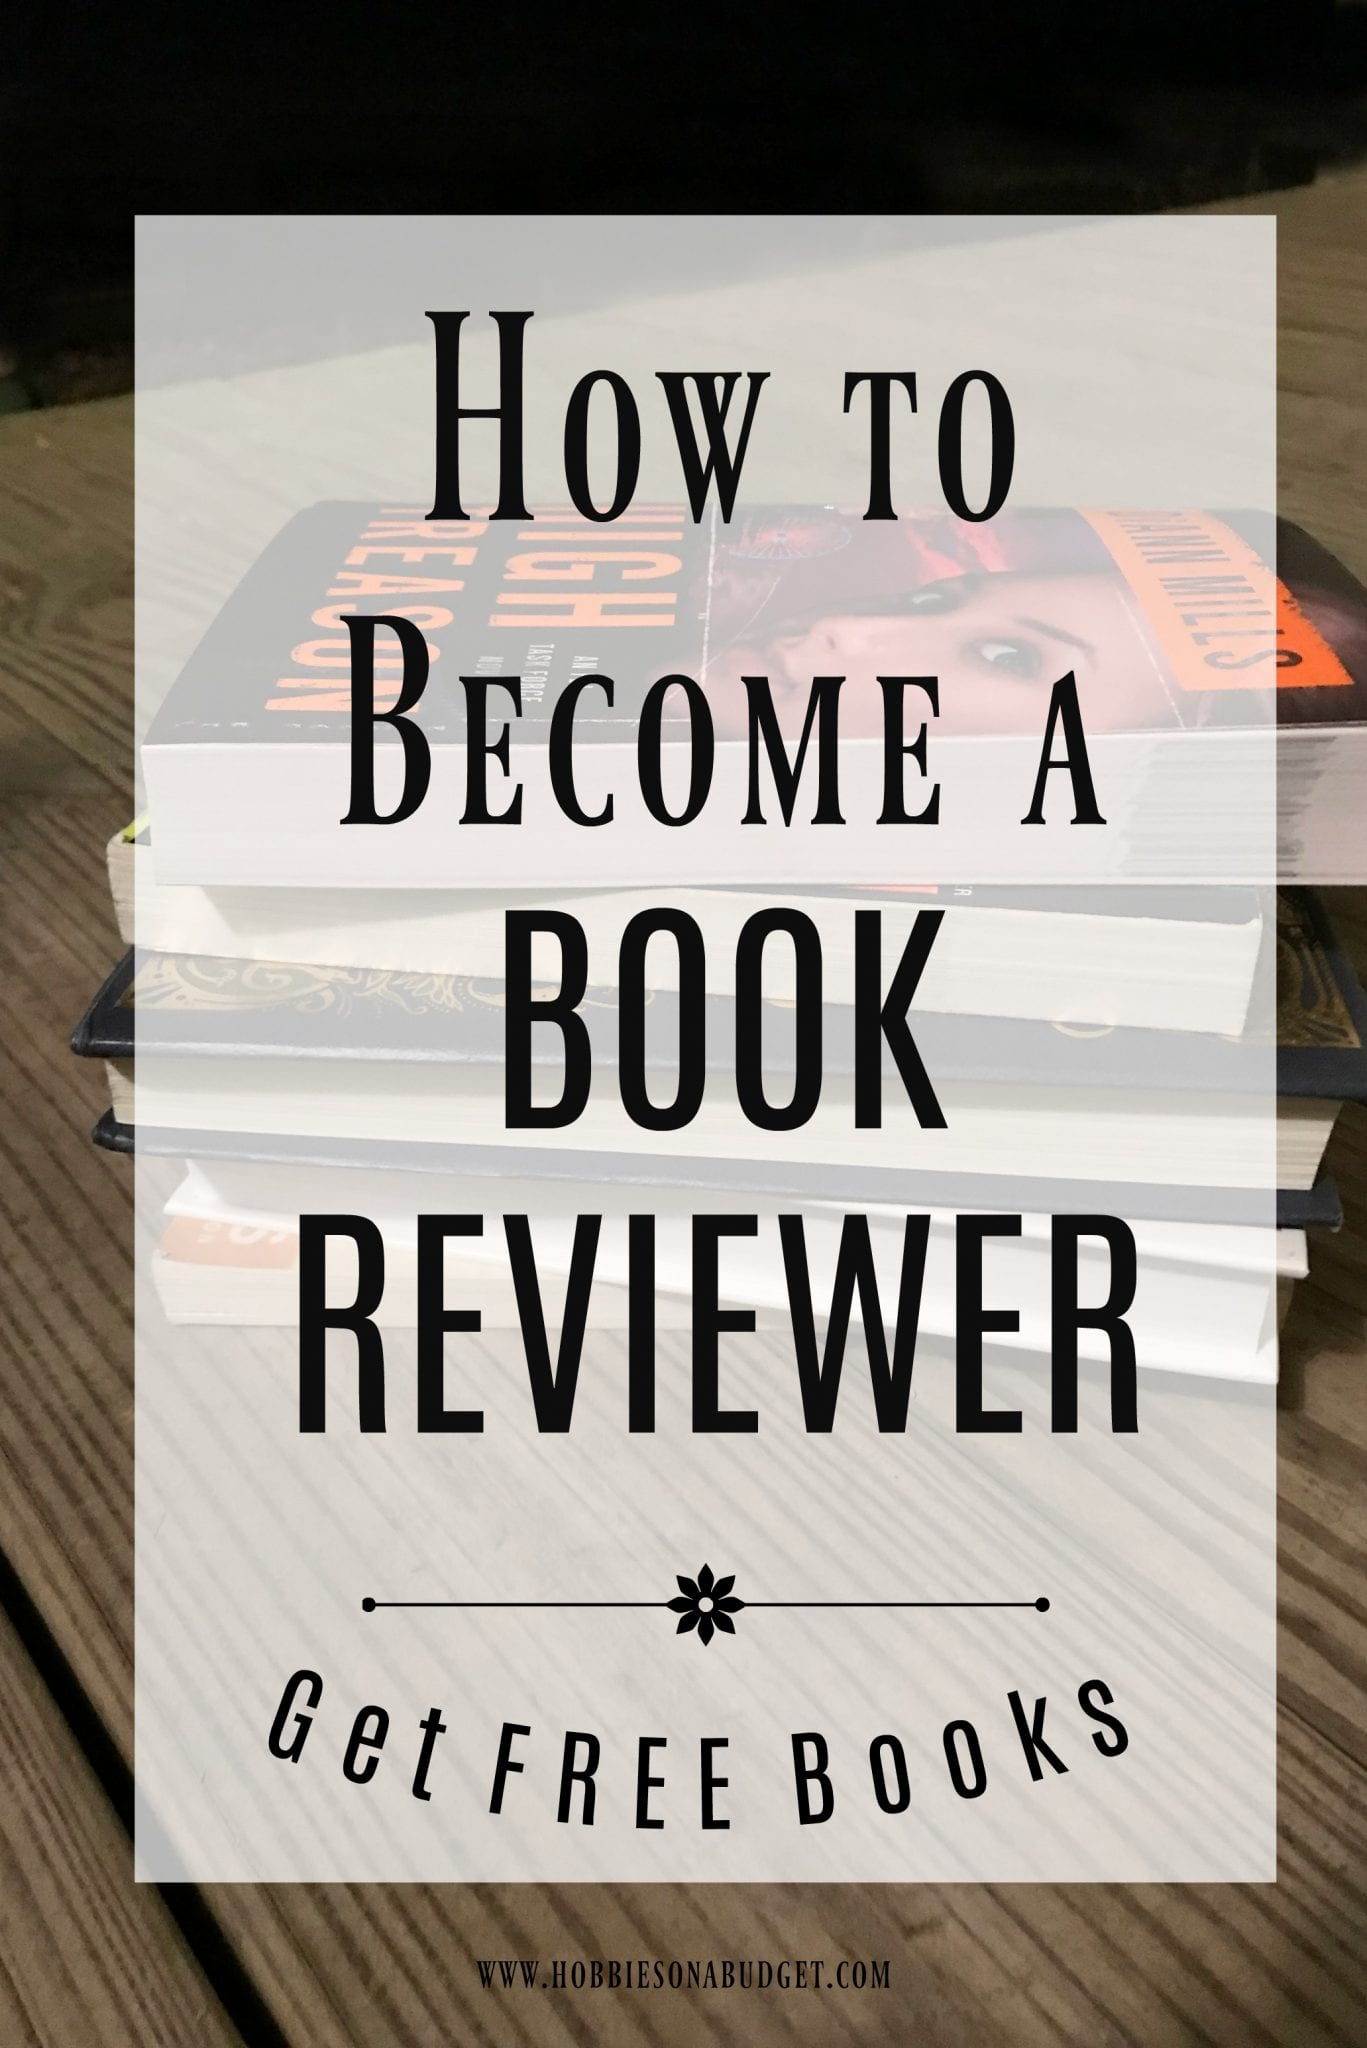 How to become a book reviewer to get free books